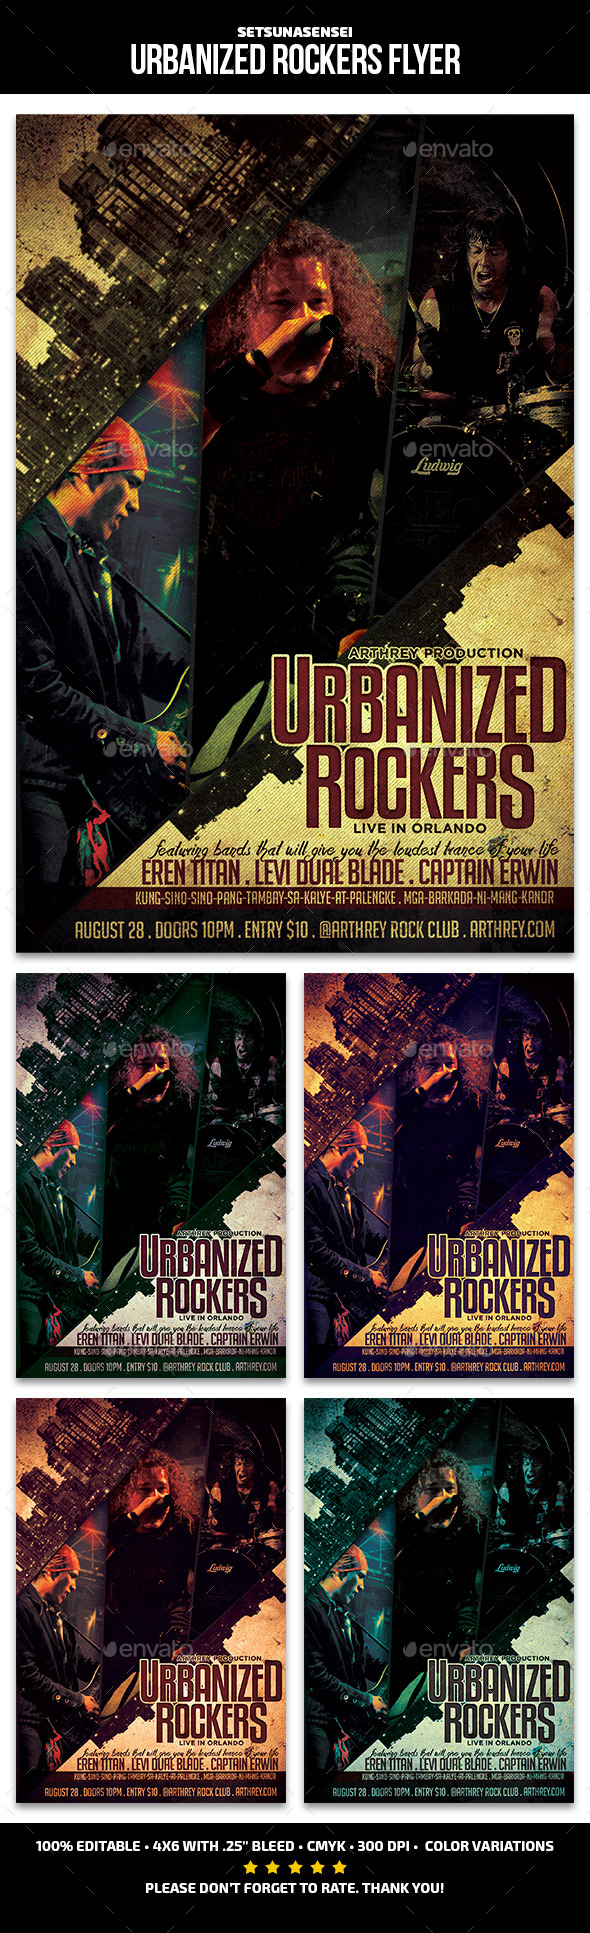 Urbanized Rockers Flyer - Concerts Events